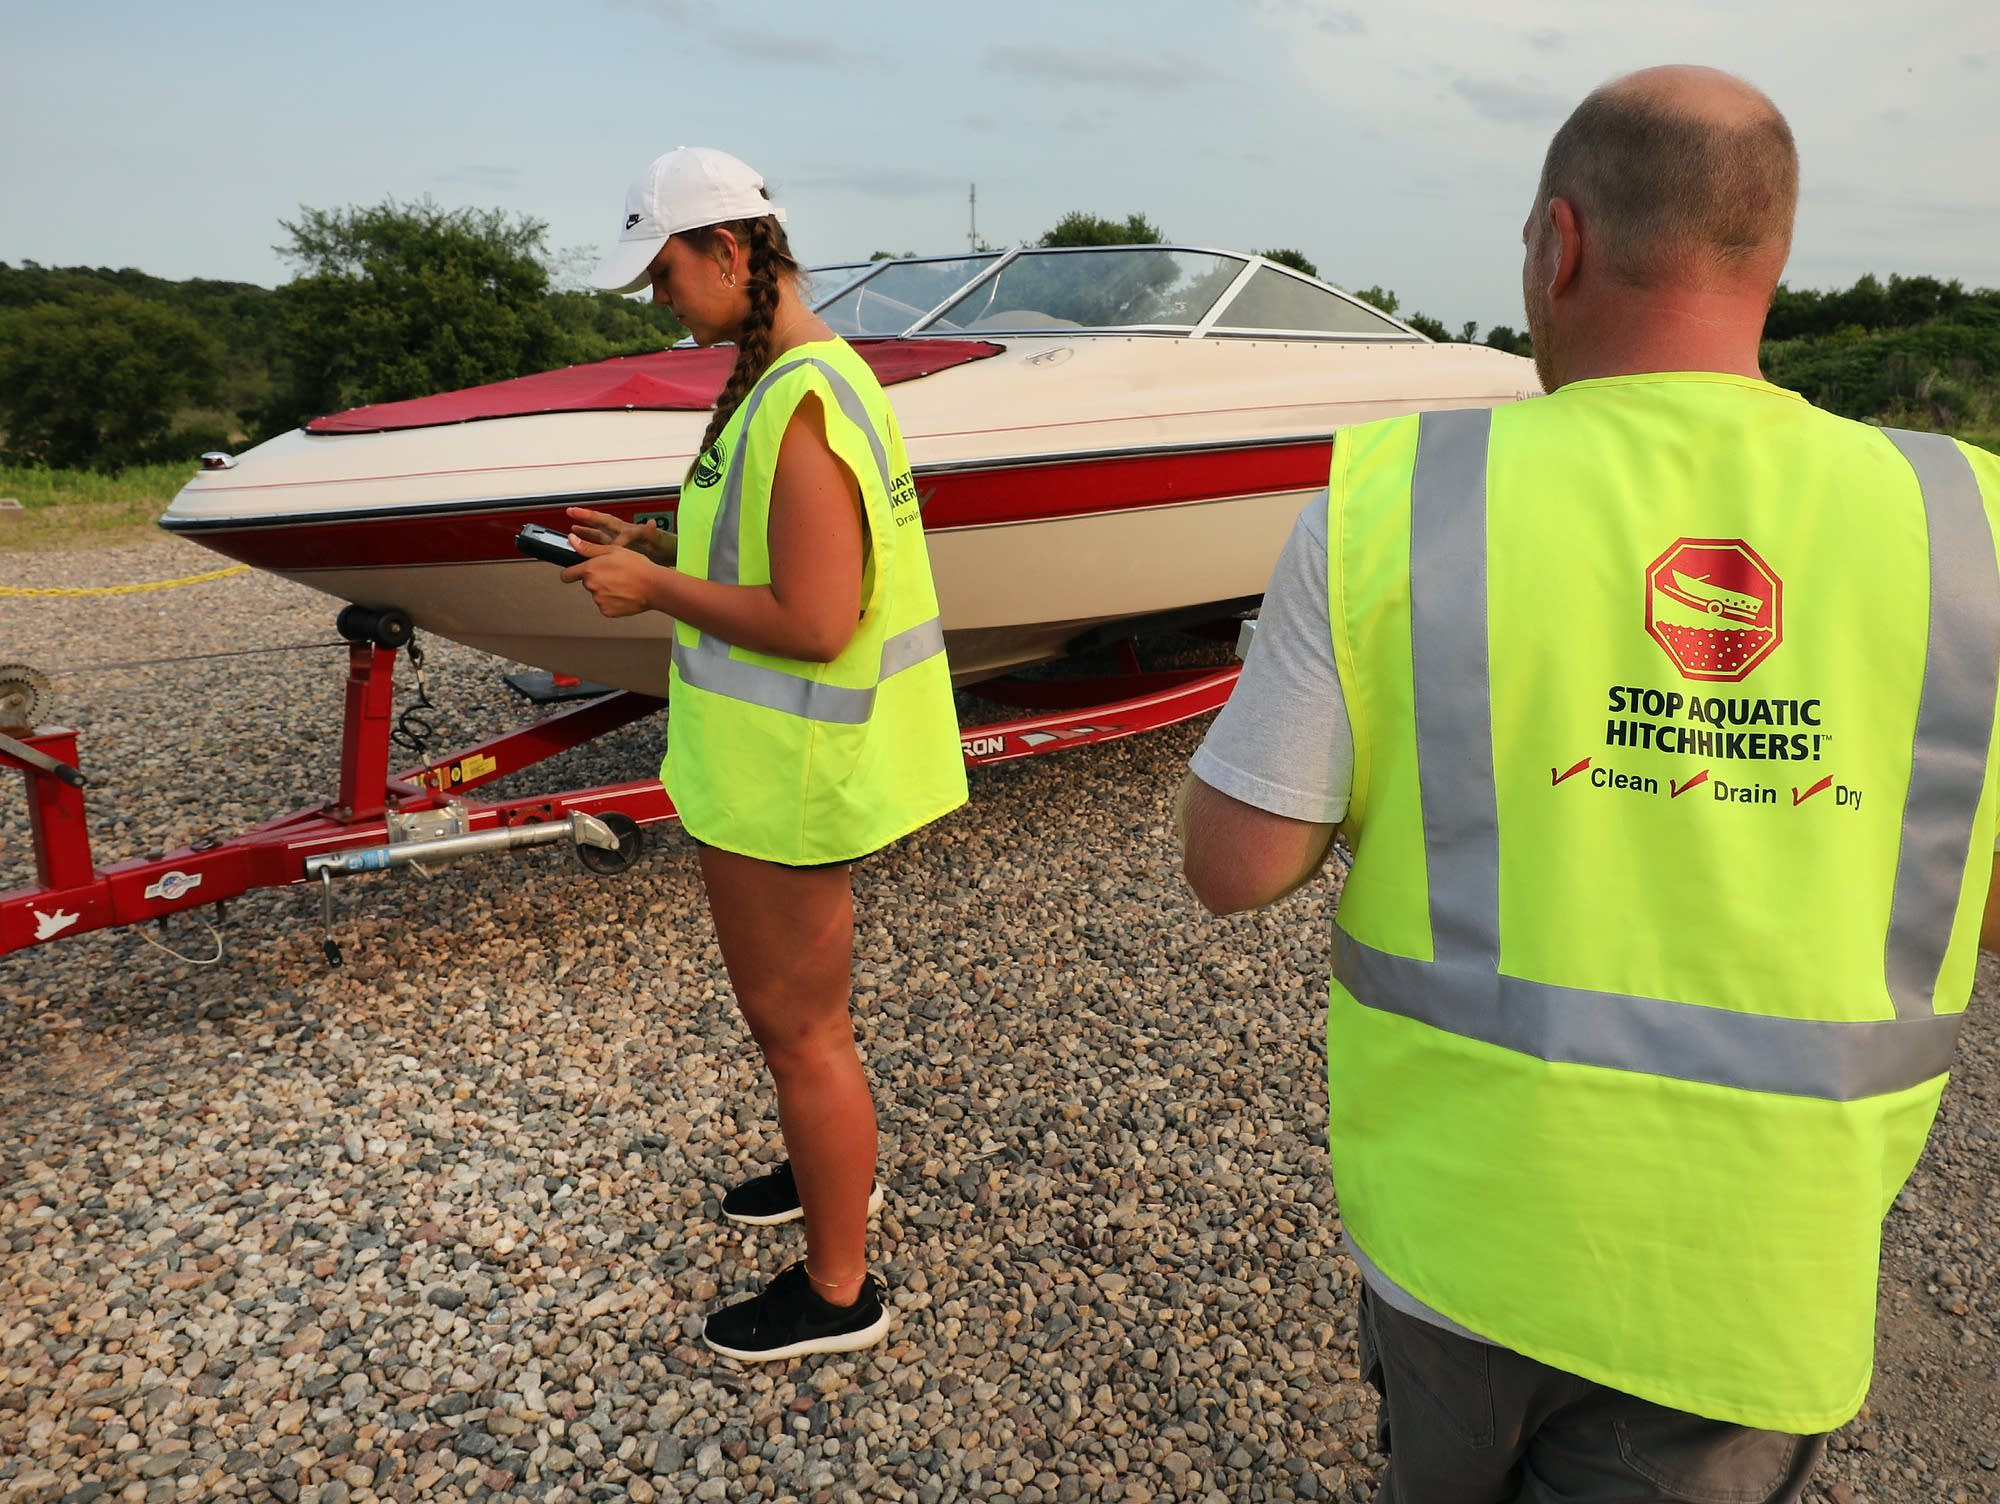 Bradley Hansen (right) and Hannah Purcell inspect a boat.